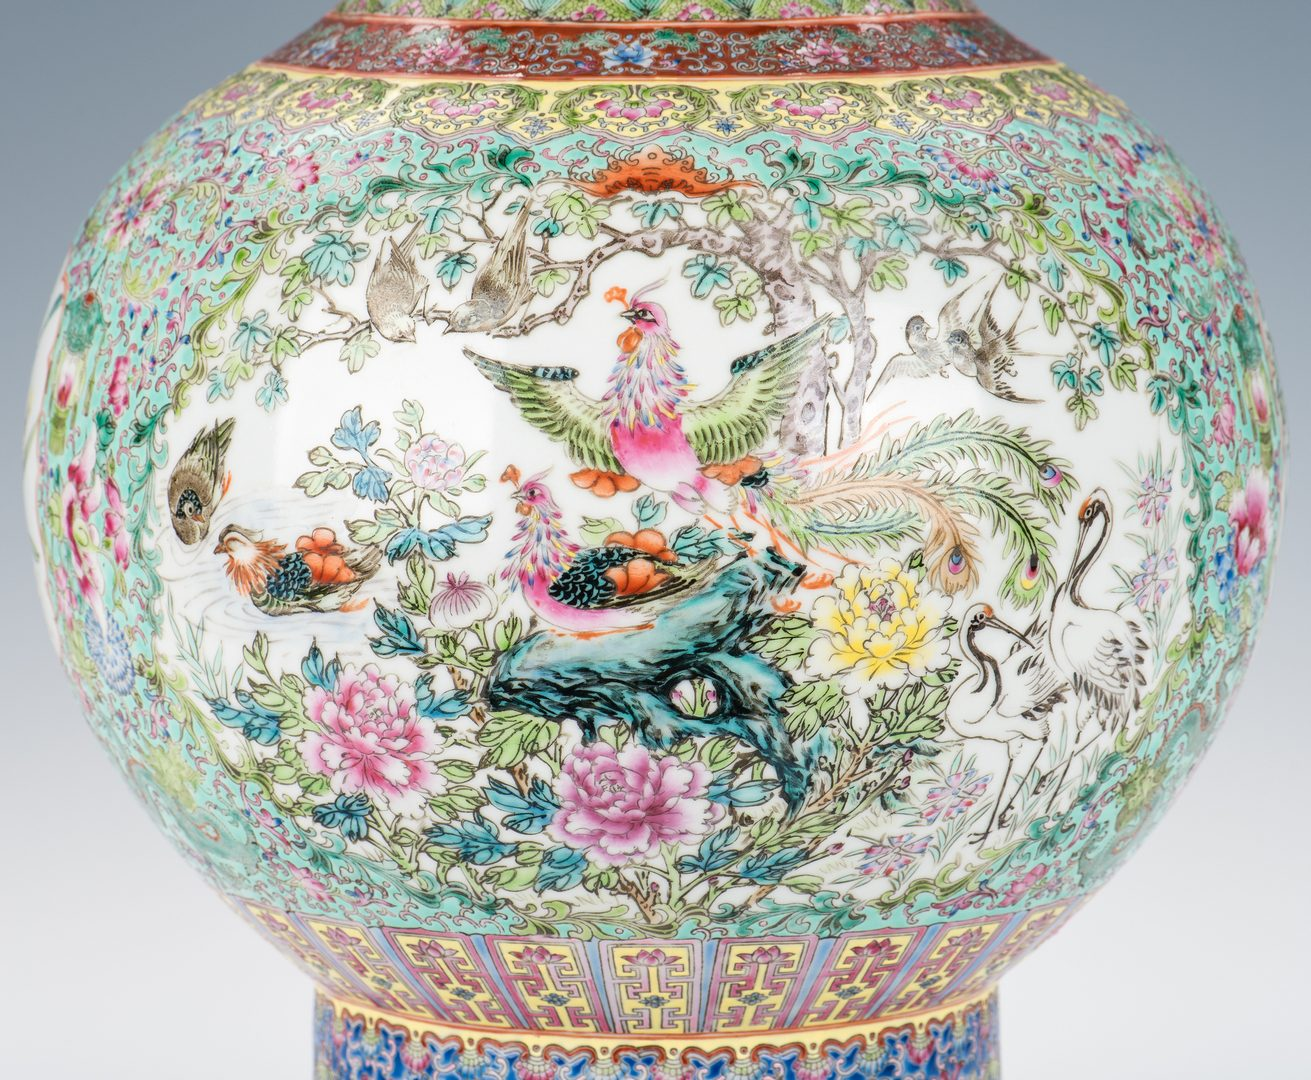 Lot 369: Large Chinese Porcelain Famille Rose Vase w/ Fish Handles